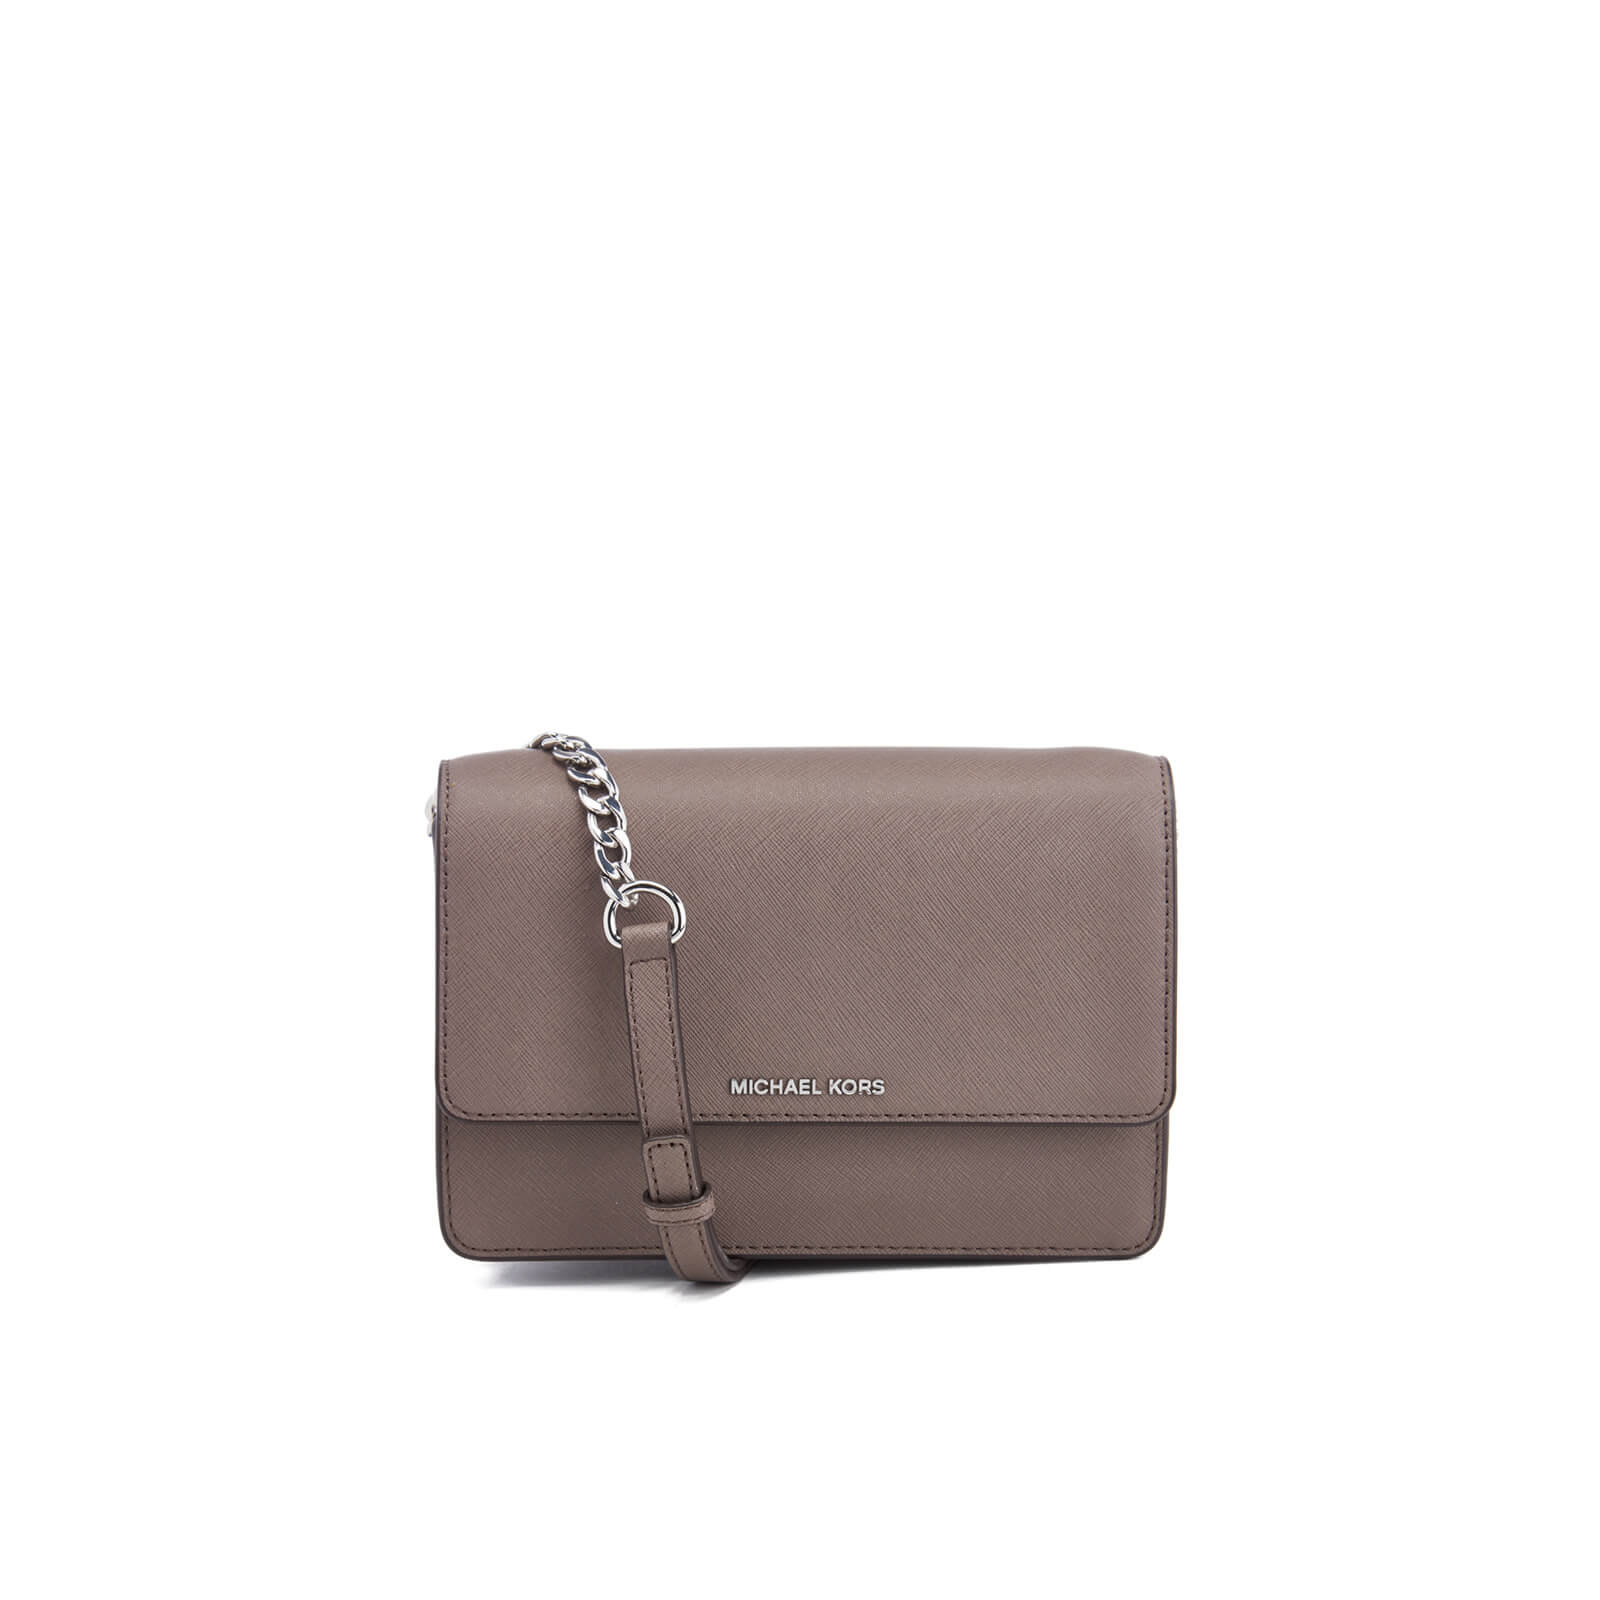 bc1c91ce87 MICHAEL MICHAEL KORS Women s Daniela Small Flap Cross Body Bag - Cinder -  Free UK Delivery over £50